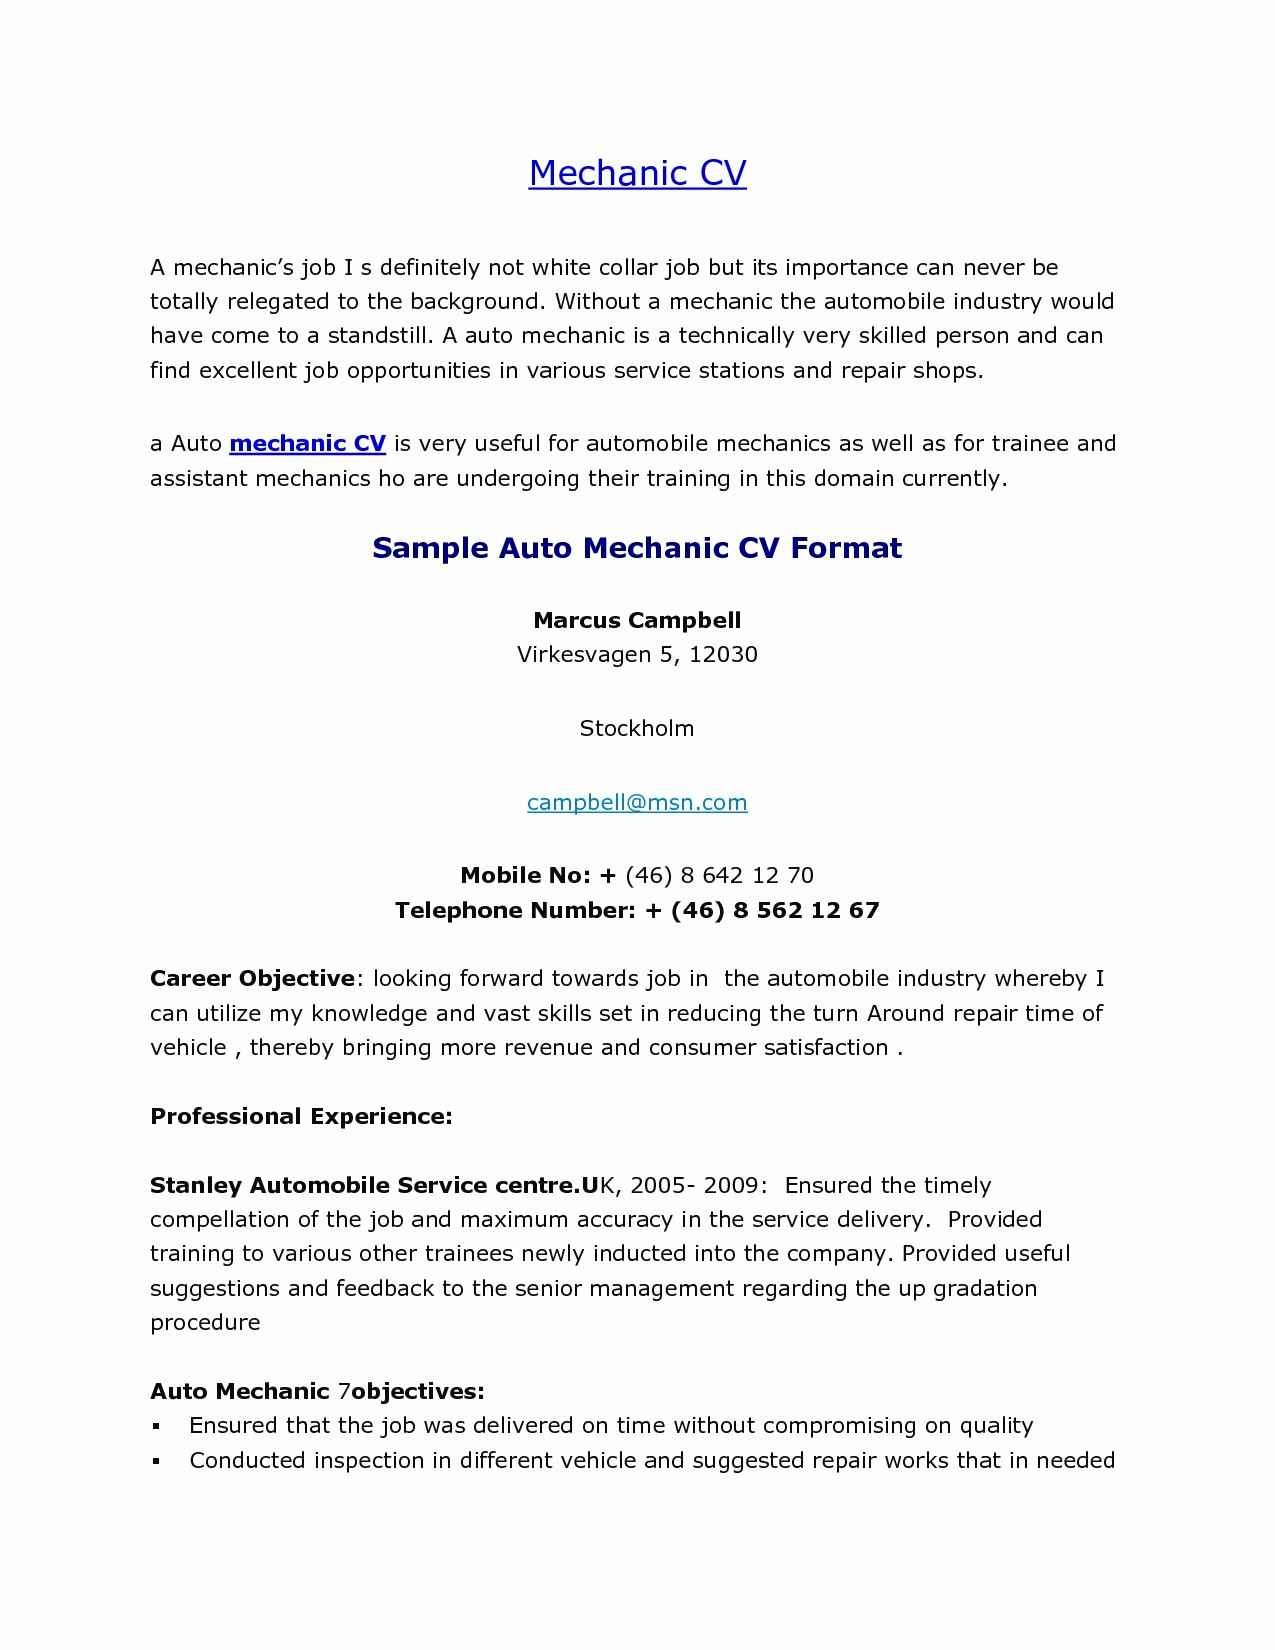 Mechanic Resume Sample - Student Resume Samples Lovely Elegant American Resume Sample New